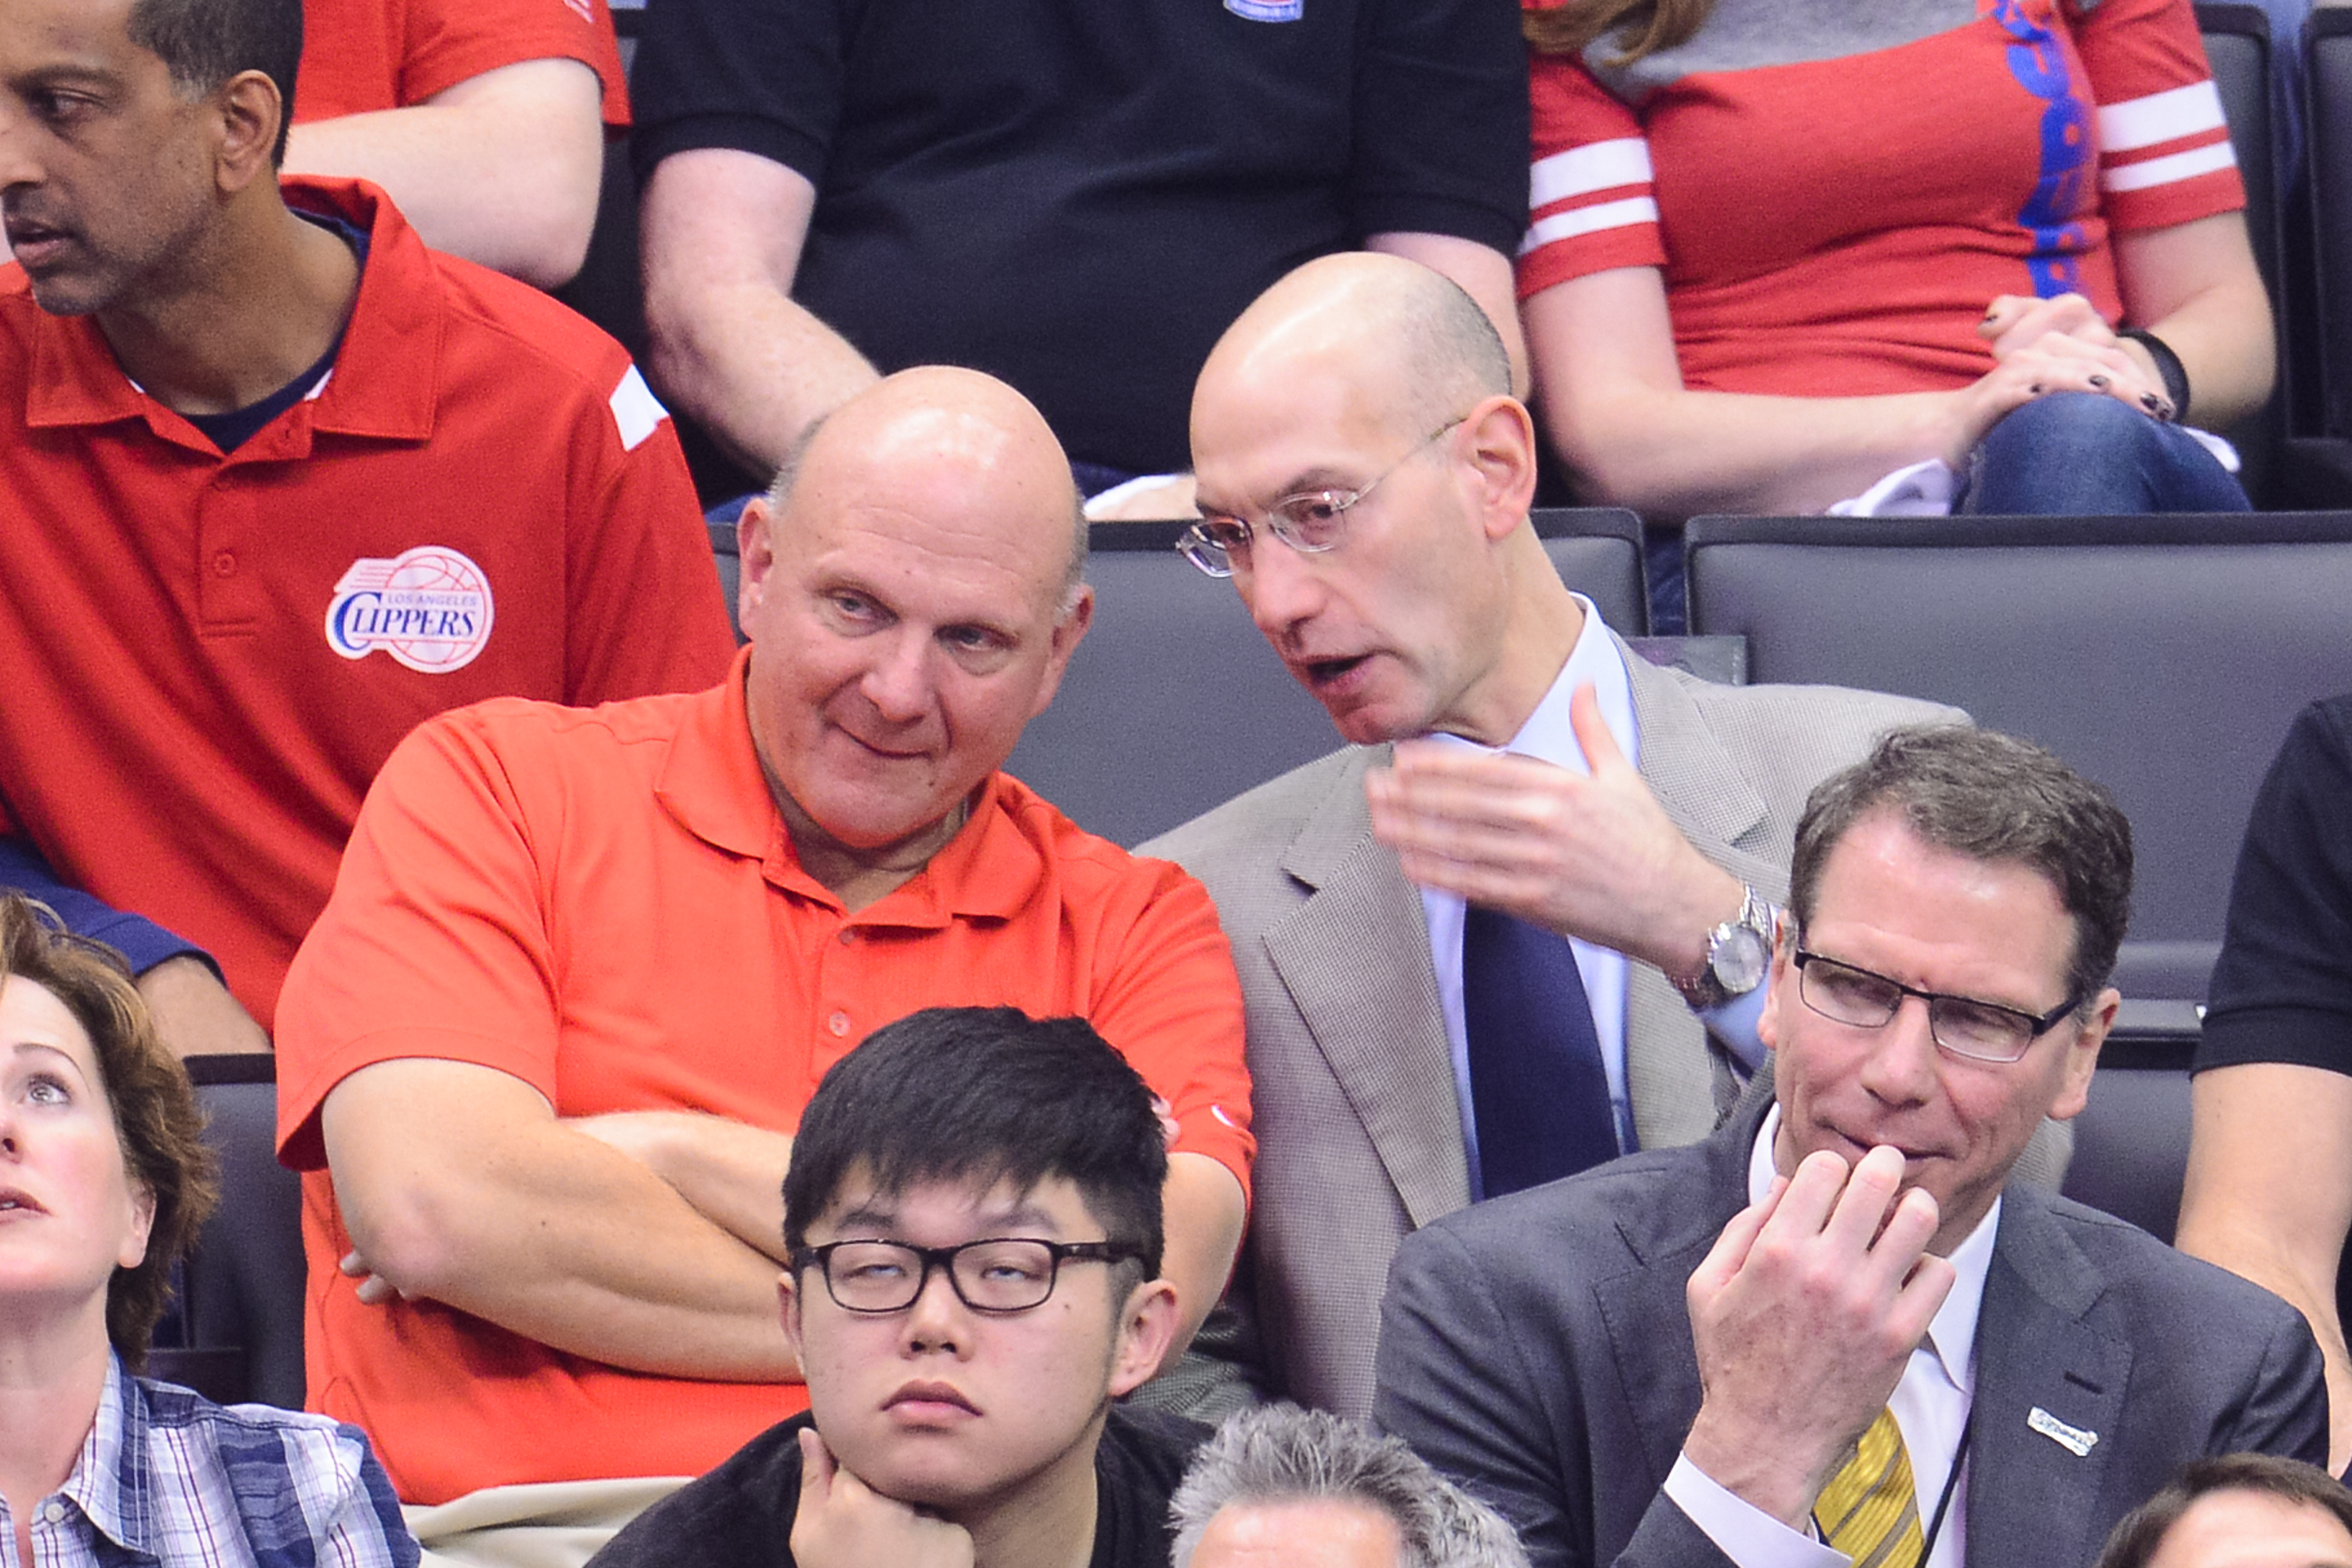 Steve Ballmer (L) and NBA Commissioner Adam SIlver attends an NBA playoff game between the Oklahoma City Thunder and the Los Angeles Clippers at Staples Center on May 11, 2014 in Los Angeles, California.